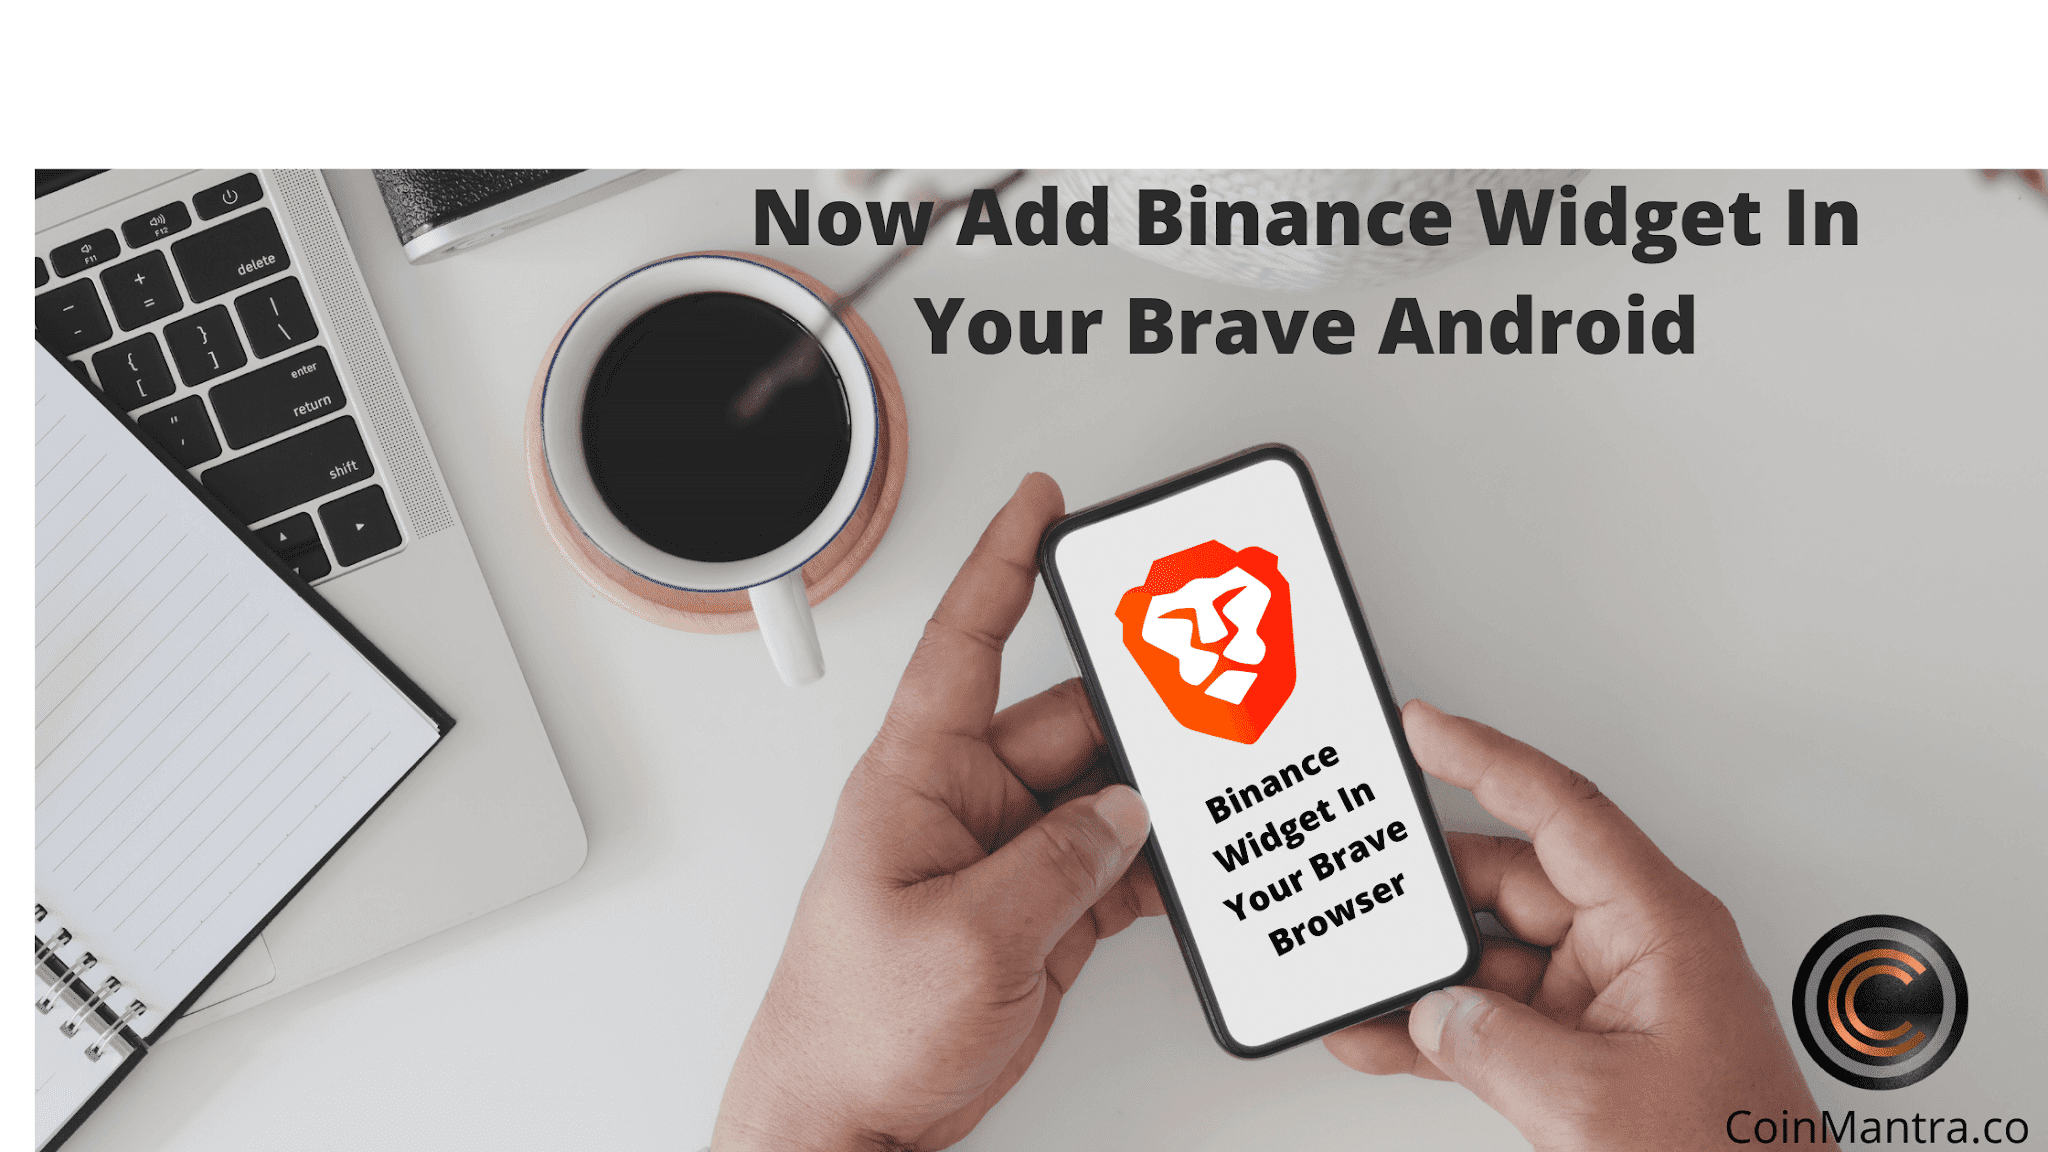 Binance Widget is available In Your Brave Android